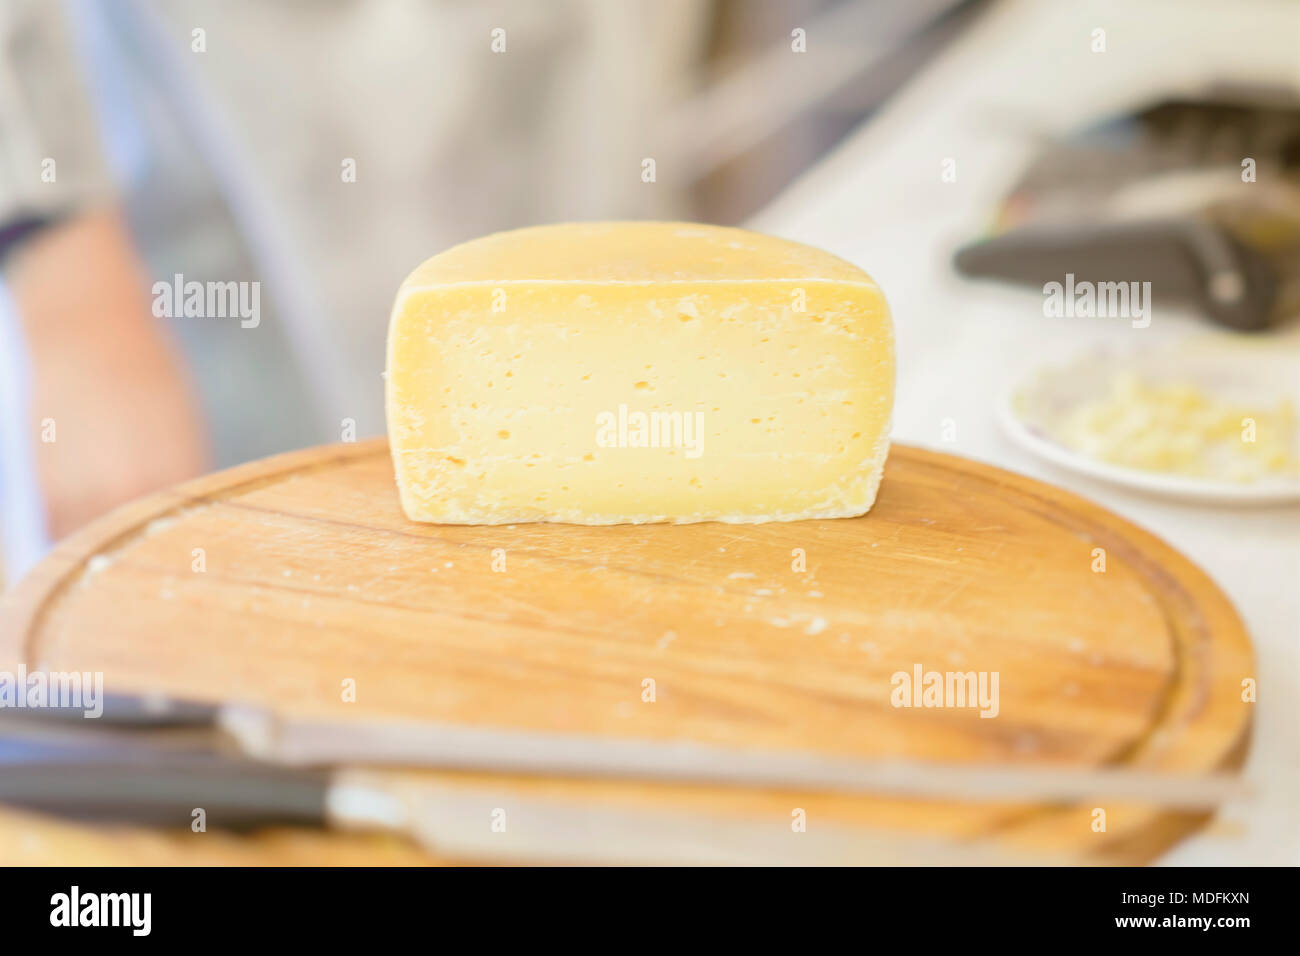 Half cheese head on on wooden market board. Gastronomic dairy produce, real scene in the food market - Stock Image